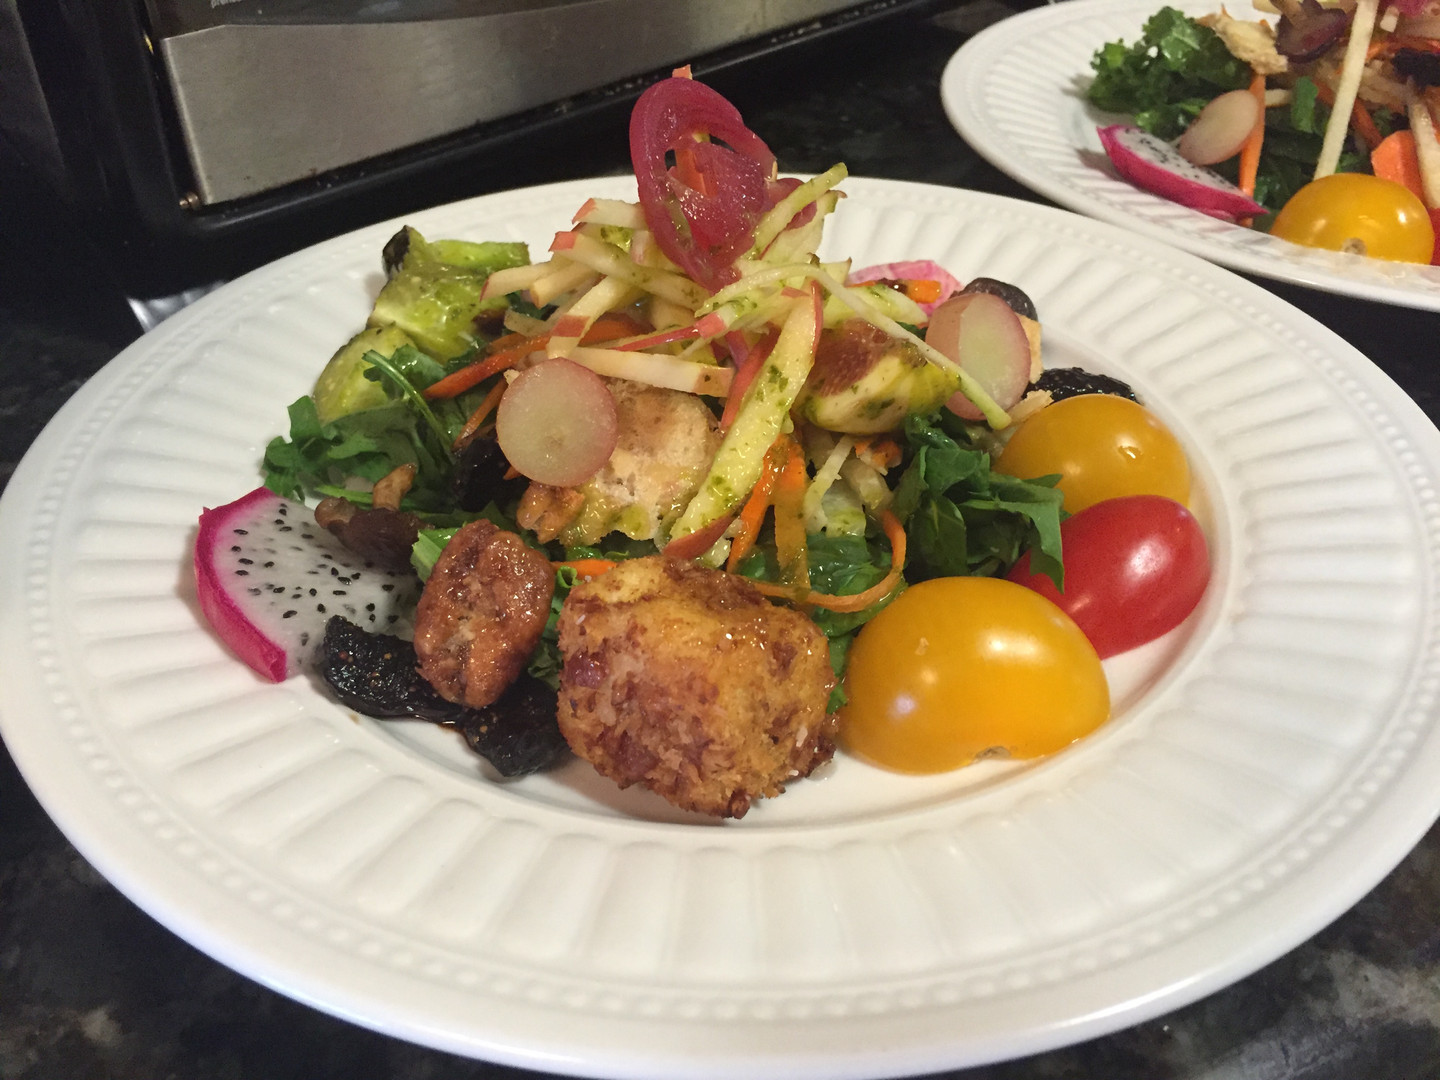 Summer Veggie salad with Panko fried goat cheese cubes